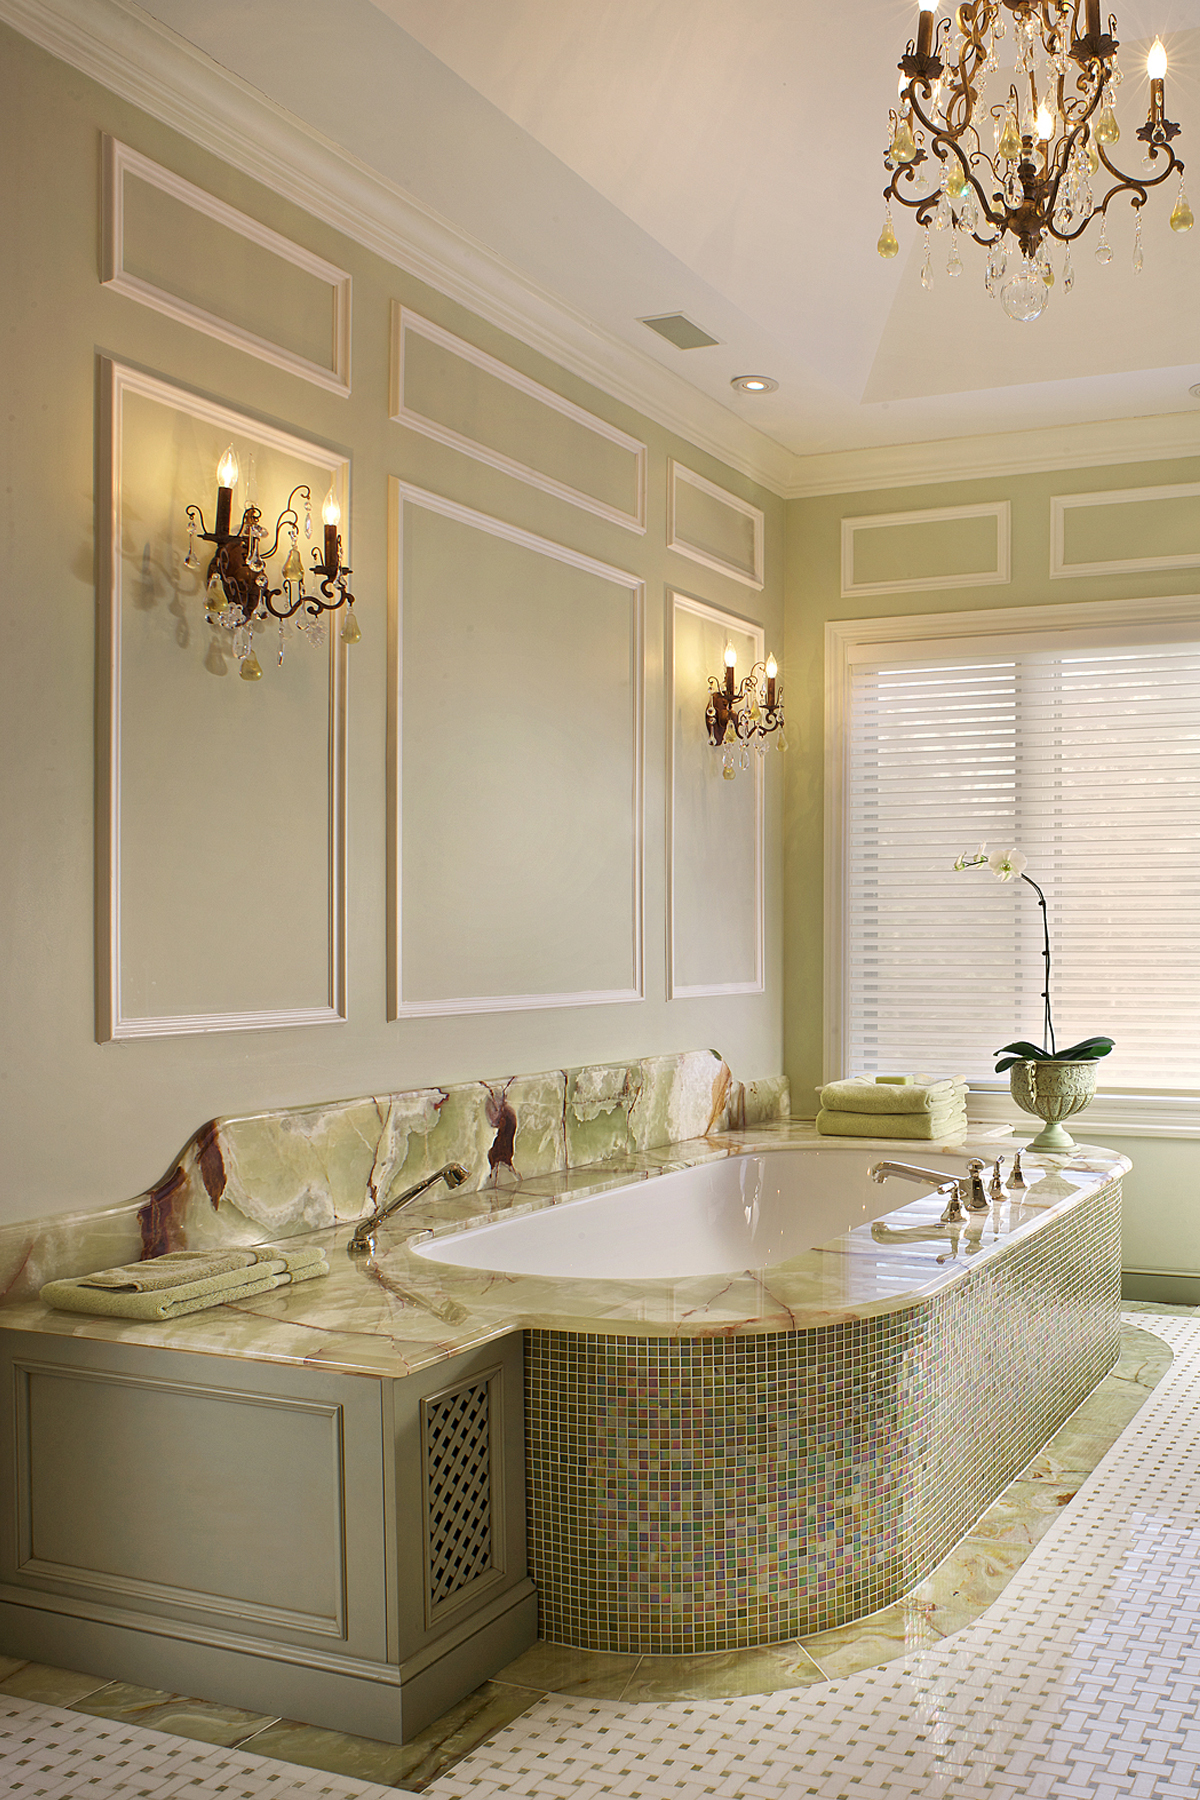 Large master bath features pistachio green painted walls with white molding accents, gold tone chandelier and wall sconces. The custom wood tub surround by Bilotta Cabinetry has light green marble with brown veining, as well as small pistachio green, gold and brown tiles. Design by Regina Bilotta of Bilotta Kitchens.